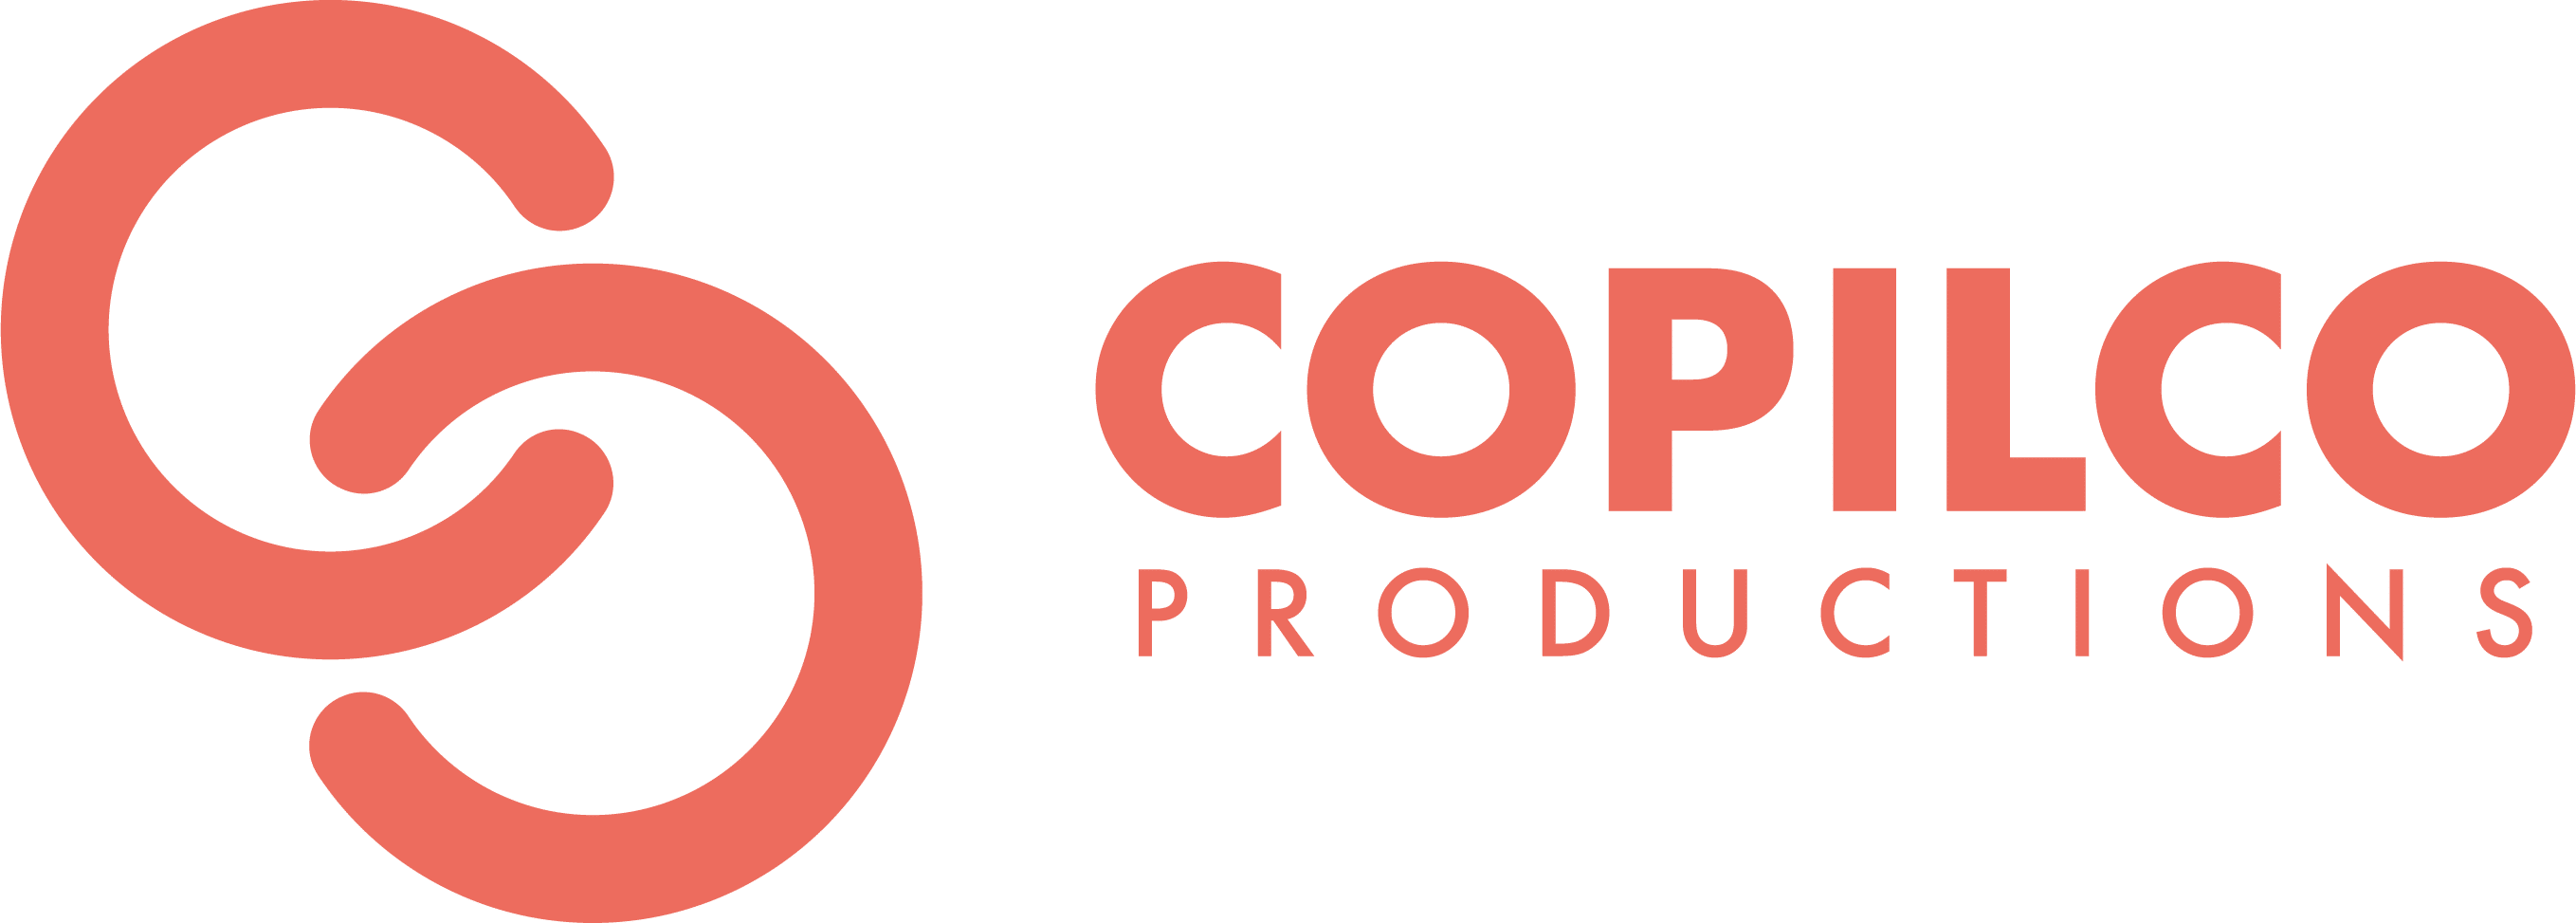 Copilco Productions